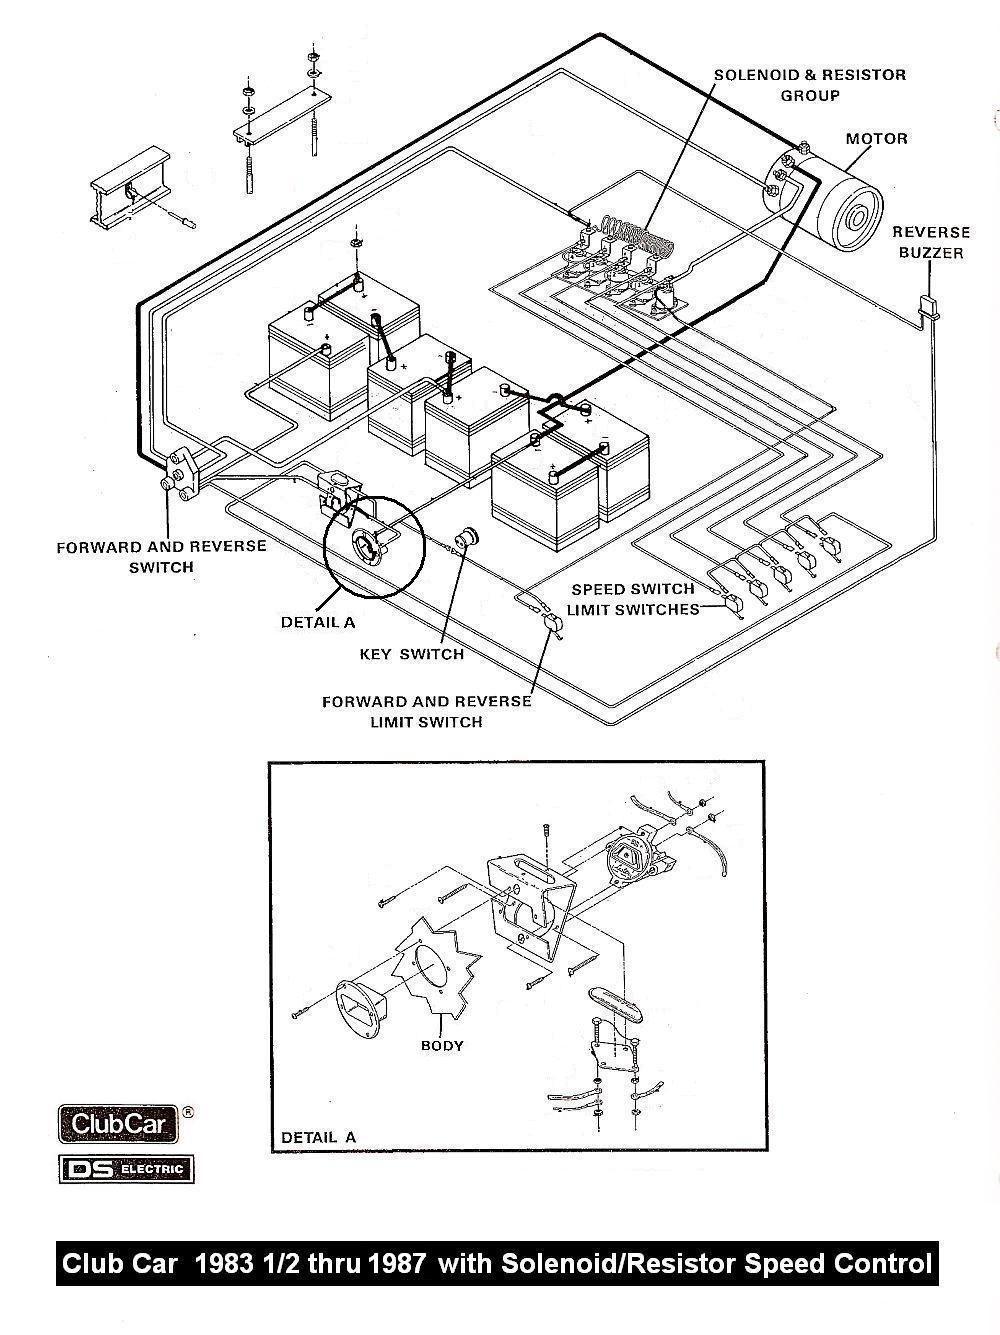 0e8d045370be7682b159825224221faa vintagegolfcartparts com *freezer & crock pot* pinterest 2002 club car wiring diagram 48 volt at alyssarenee.co